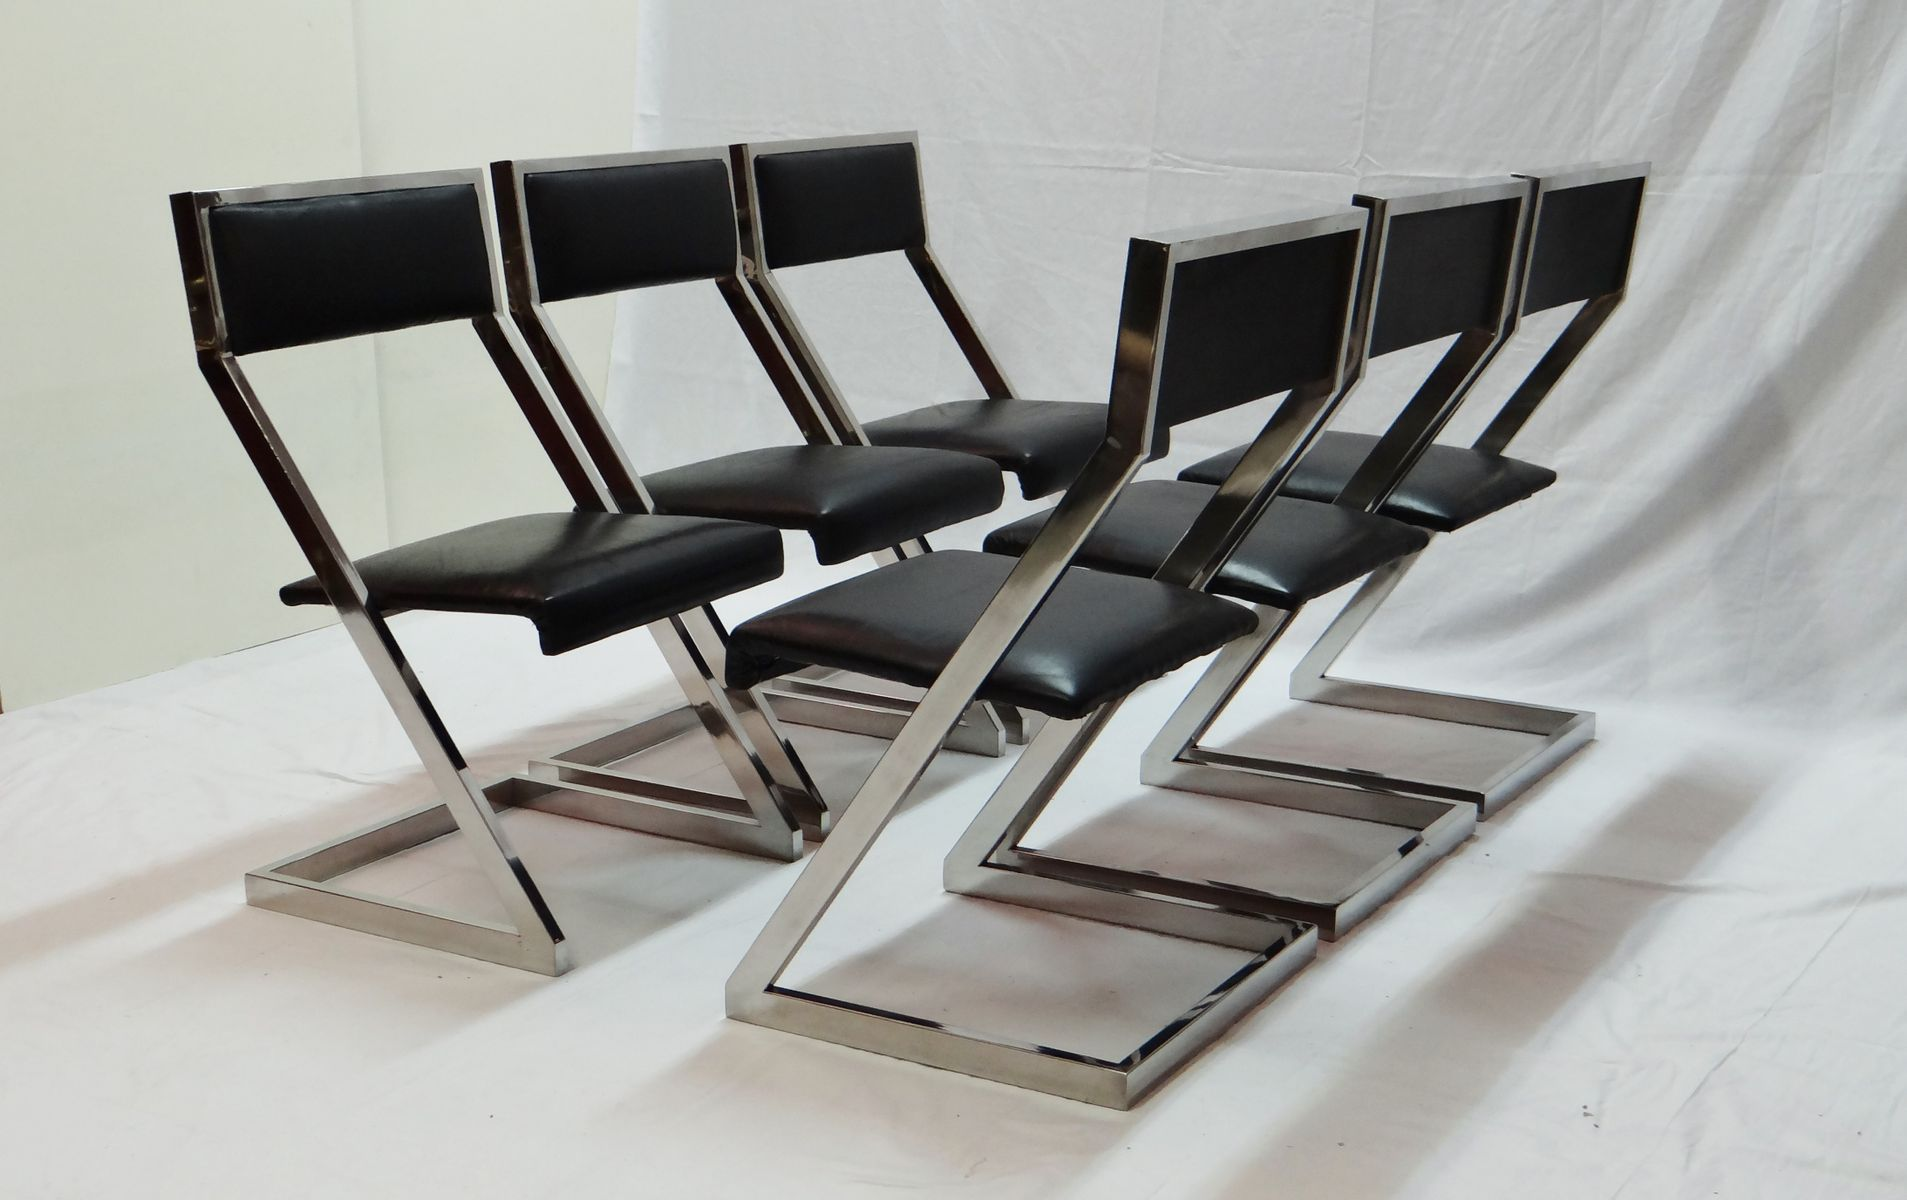 Chrome plated z shaped dining chairs 1970s set of 6 for for Dining chair shapes